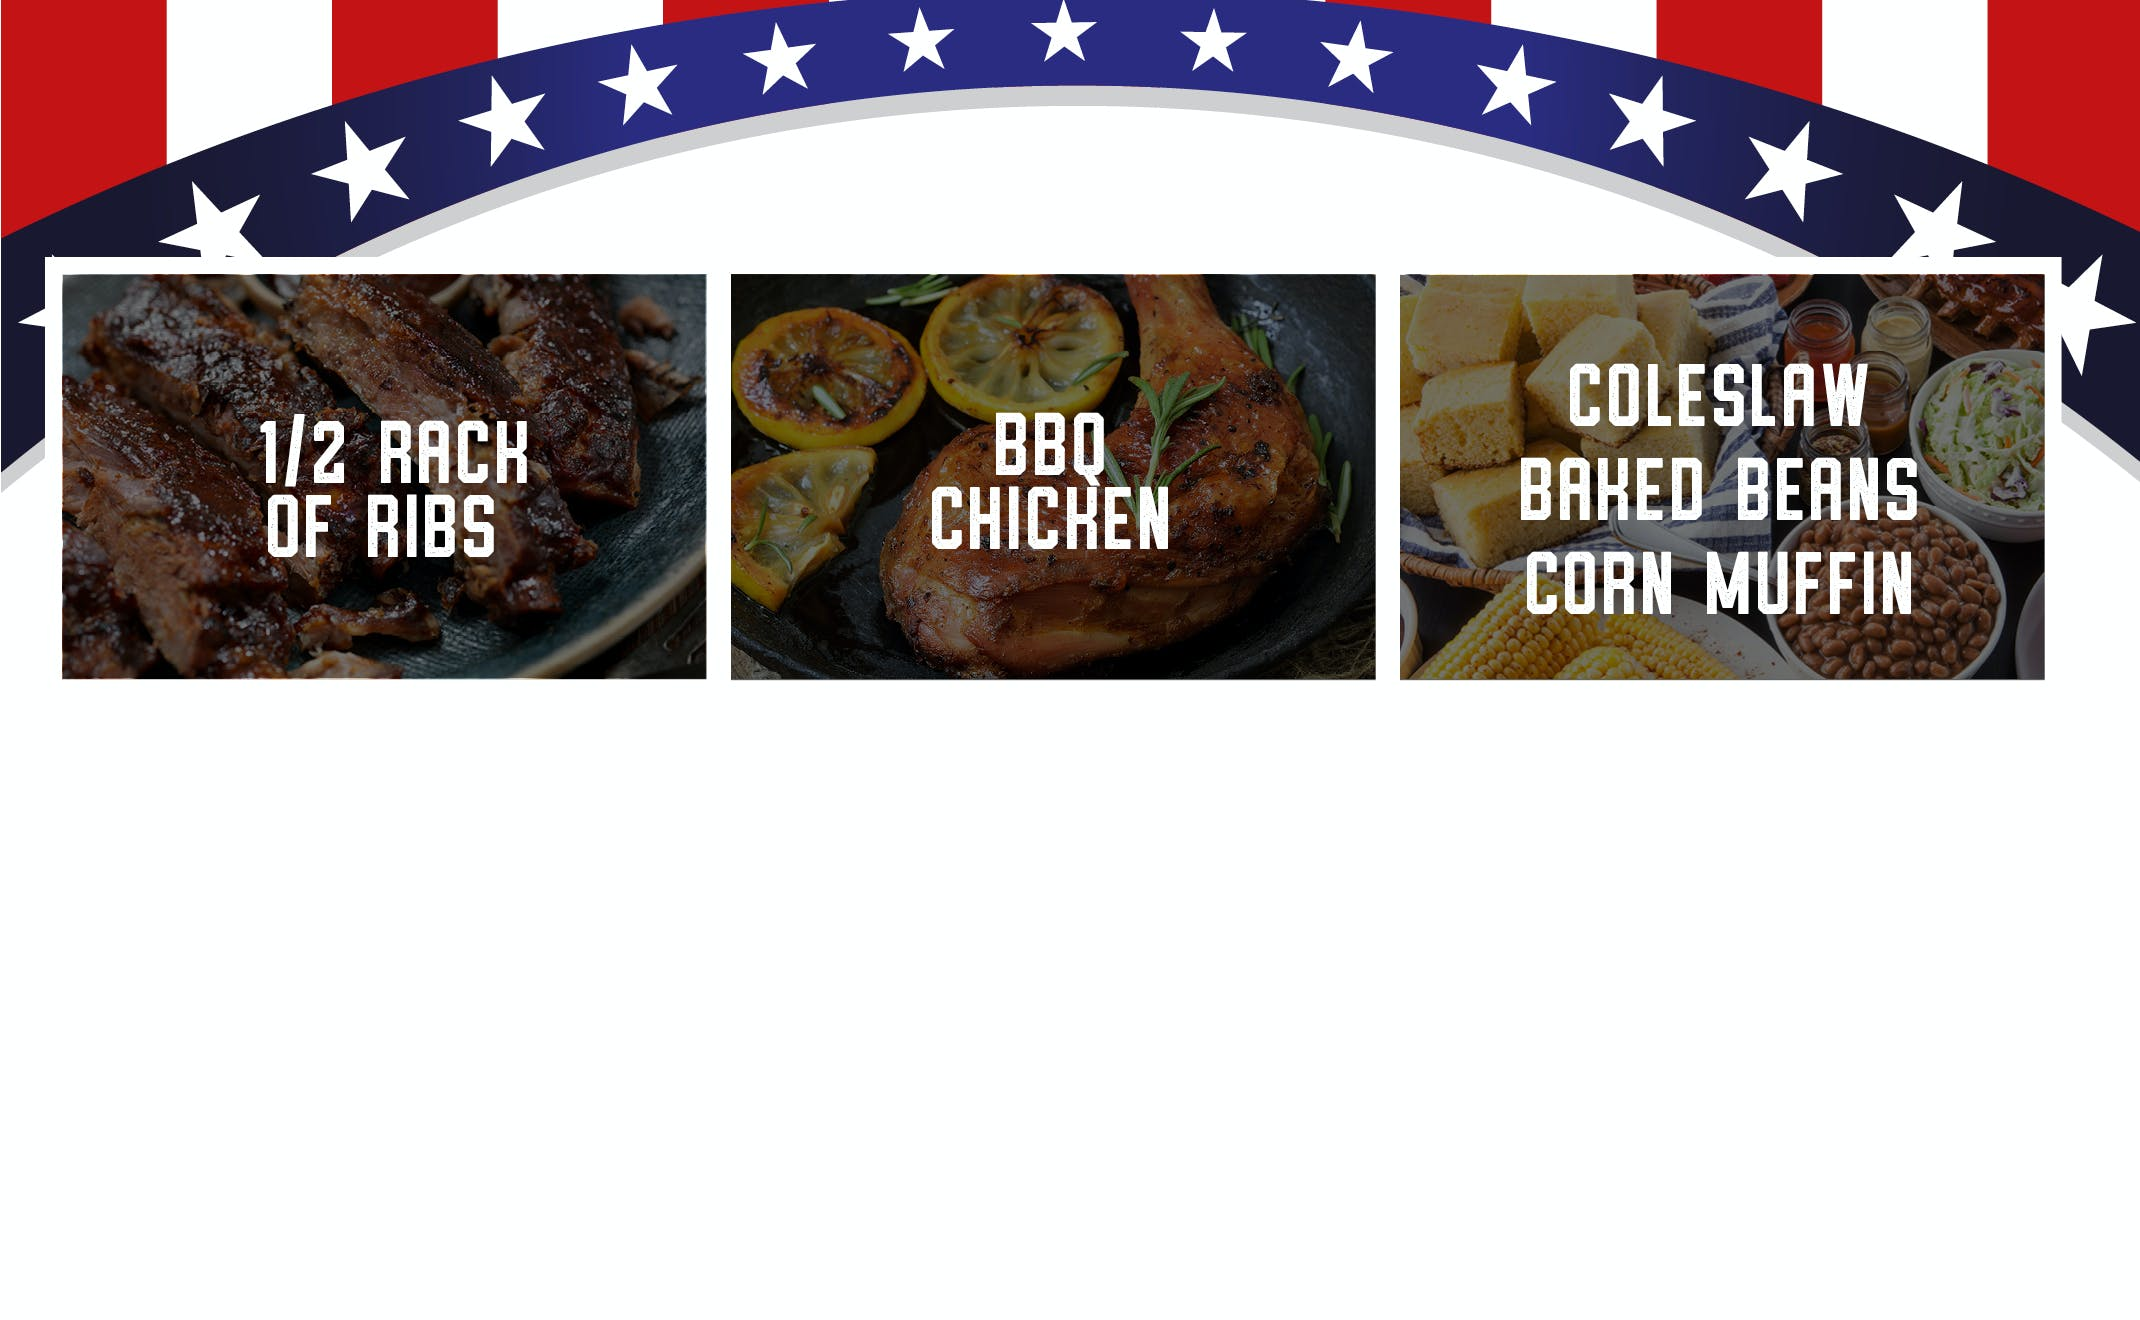 Rivers Casino - Jack's Bar And Grill - Memorial Day Restaurant Specials Homepage Slider Image